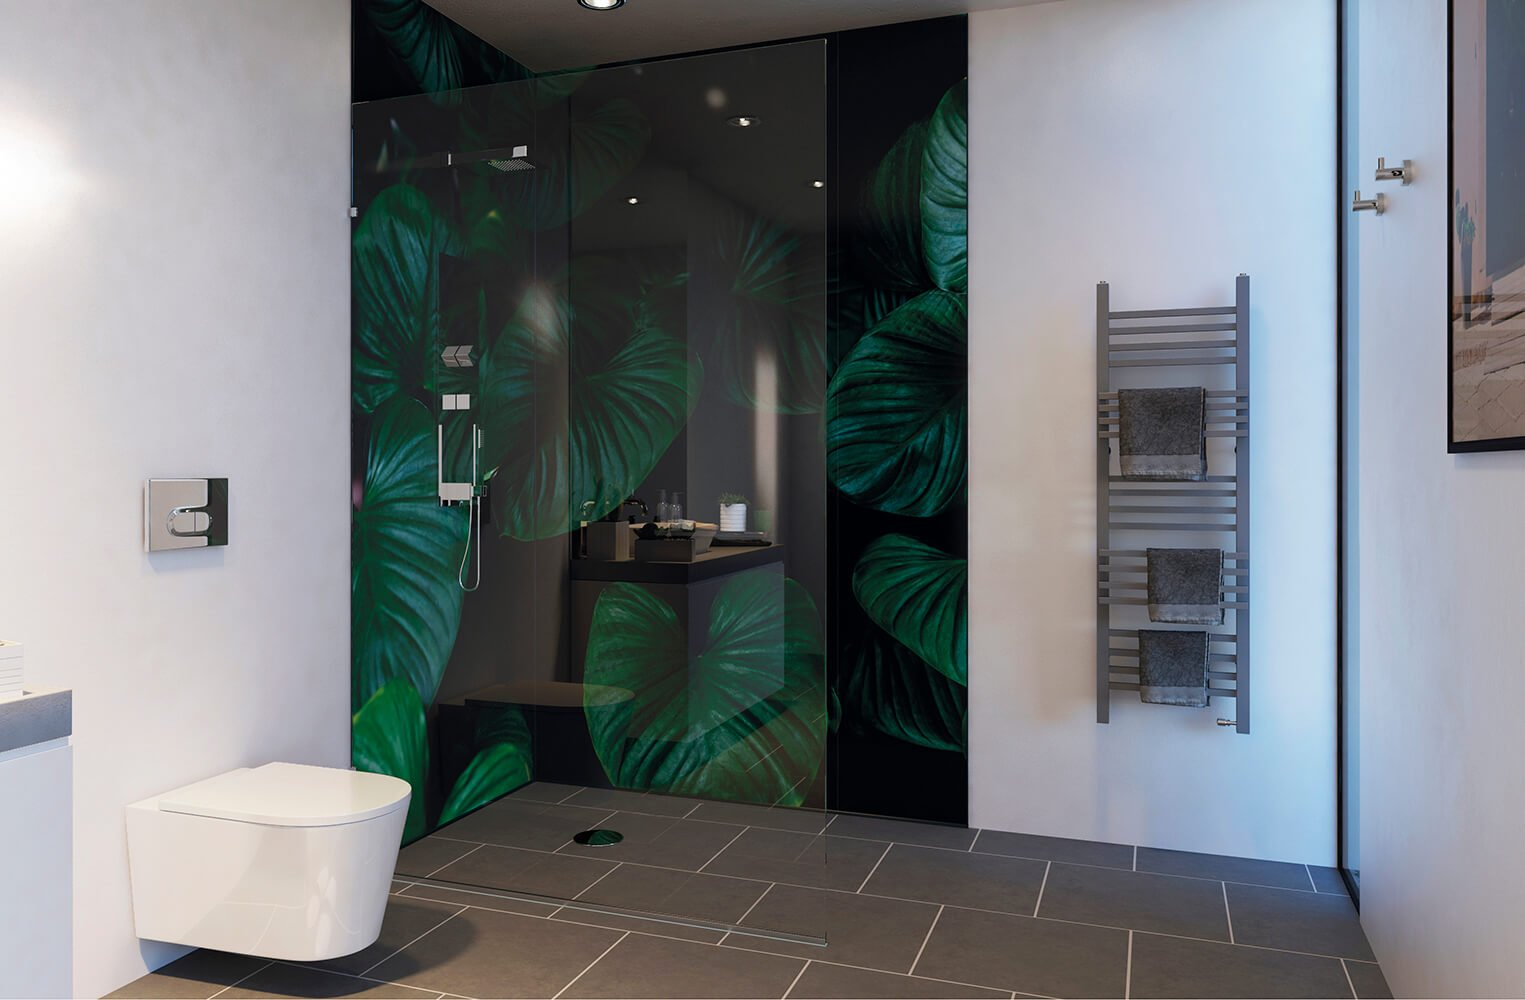 The Biggest Bathroom Trend For 2019 by interior styist and lifestyle blogger Maxine Brady from www.welovehomeblog.com